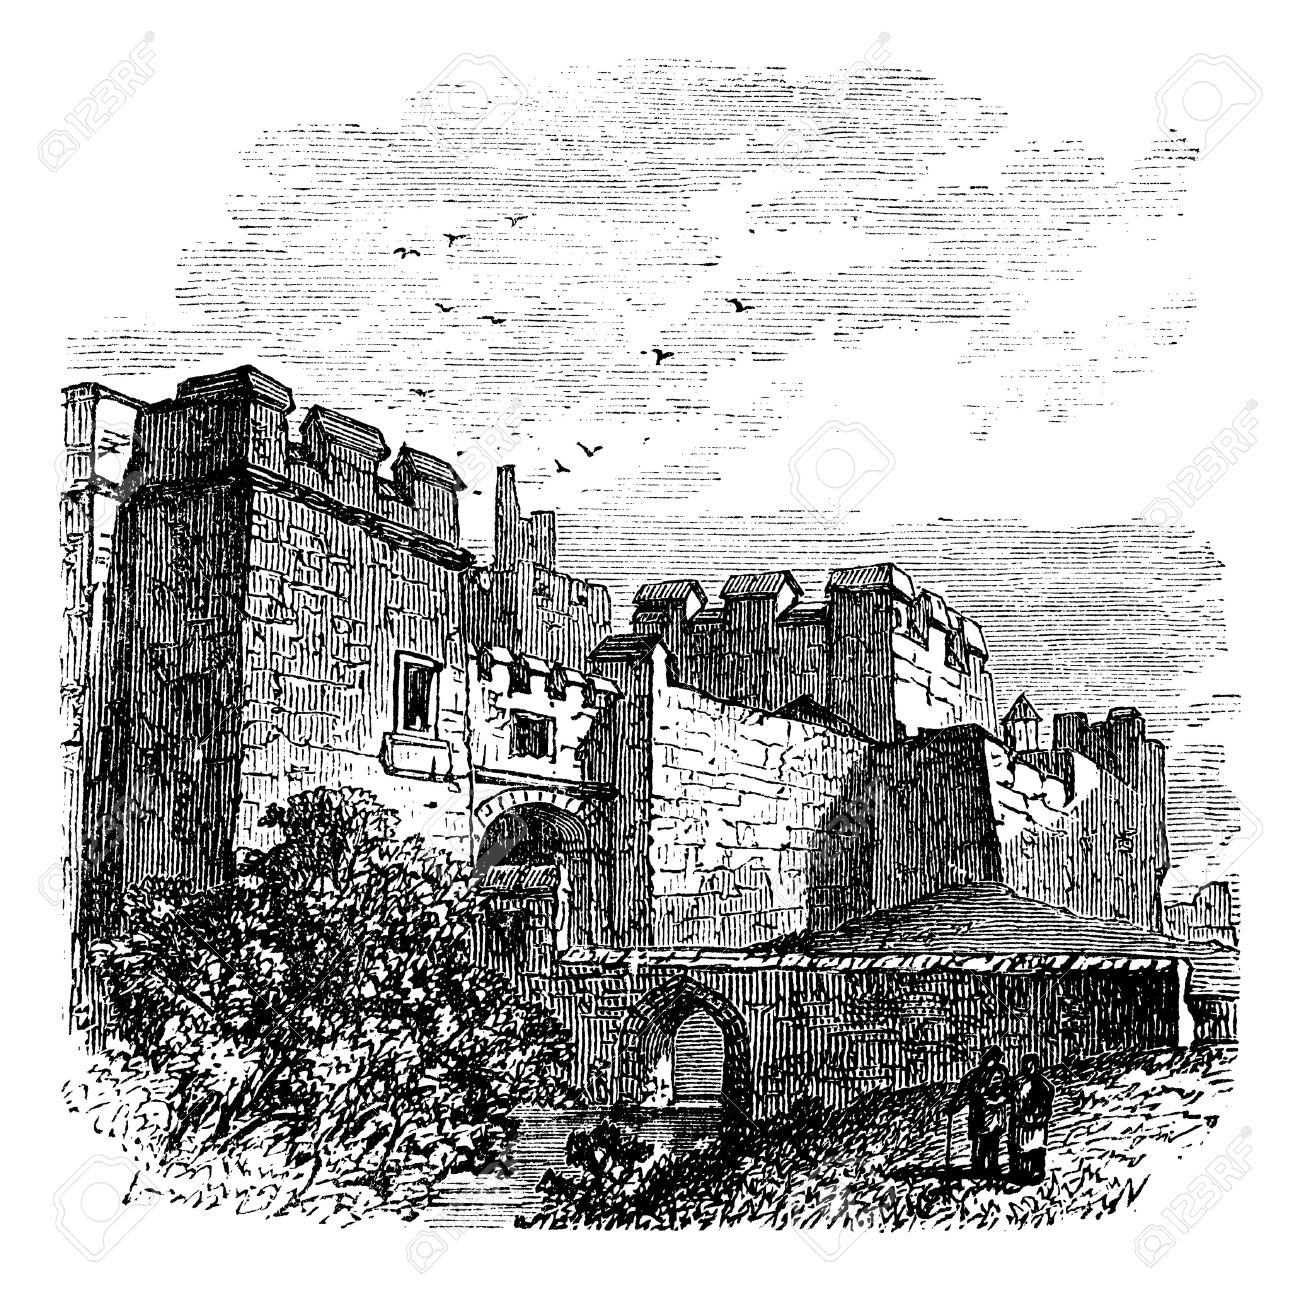 646 England Wall Stock Illustrations, Cliparts And Royalty Free.